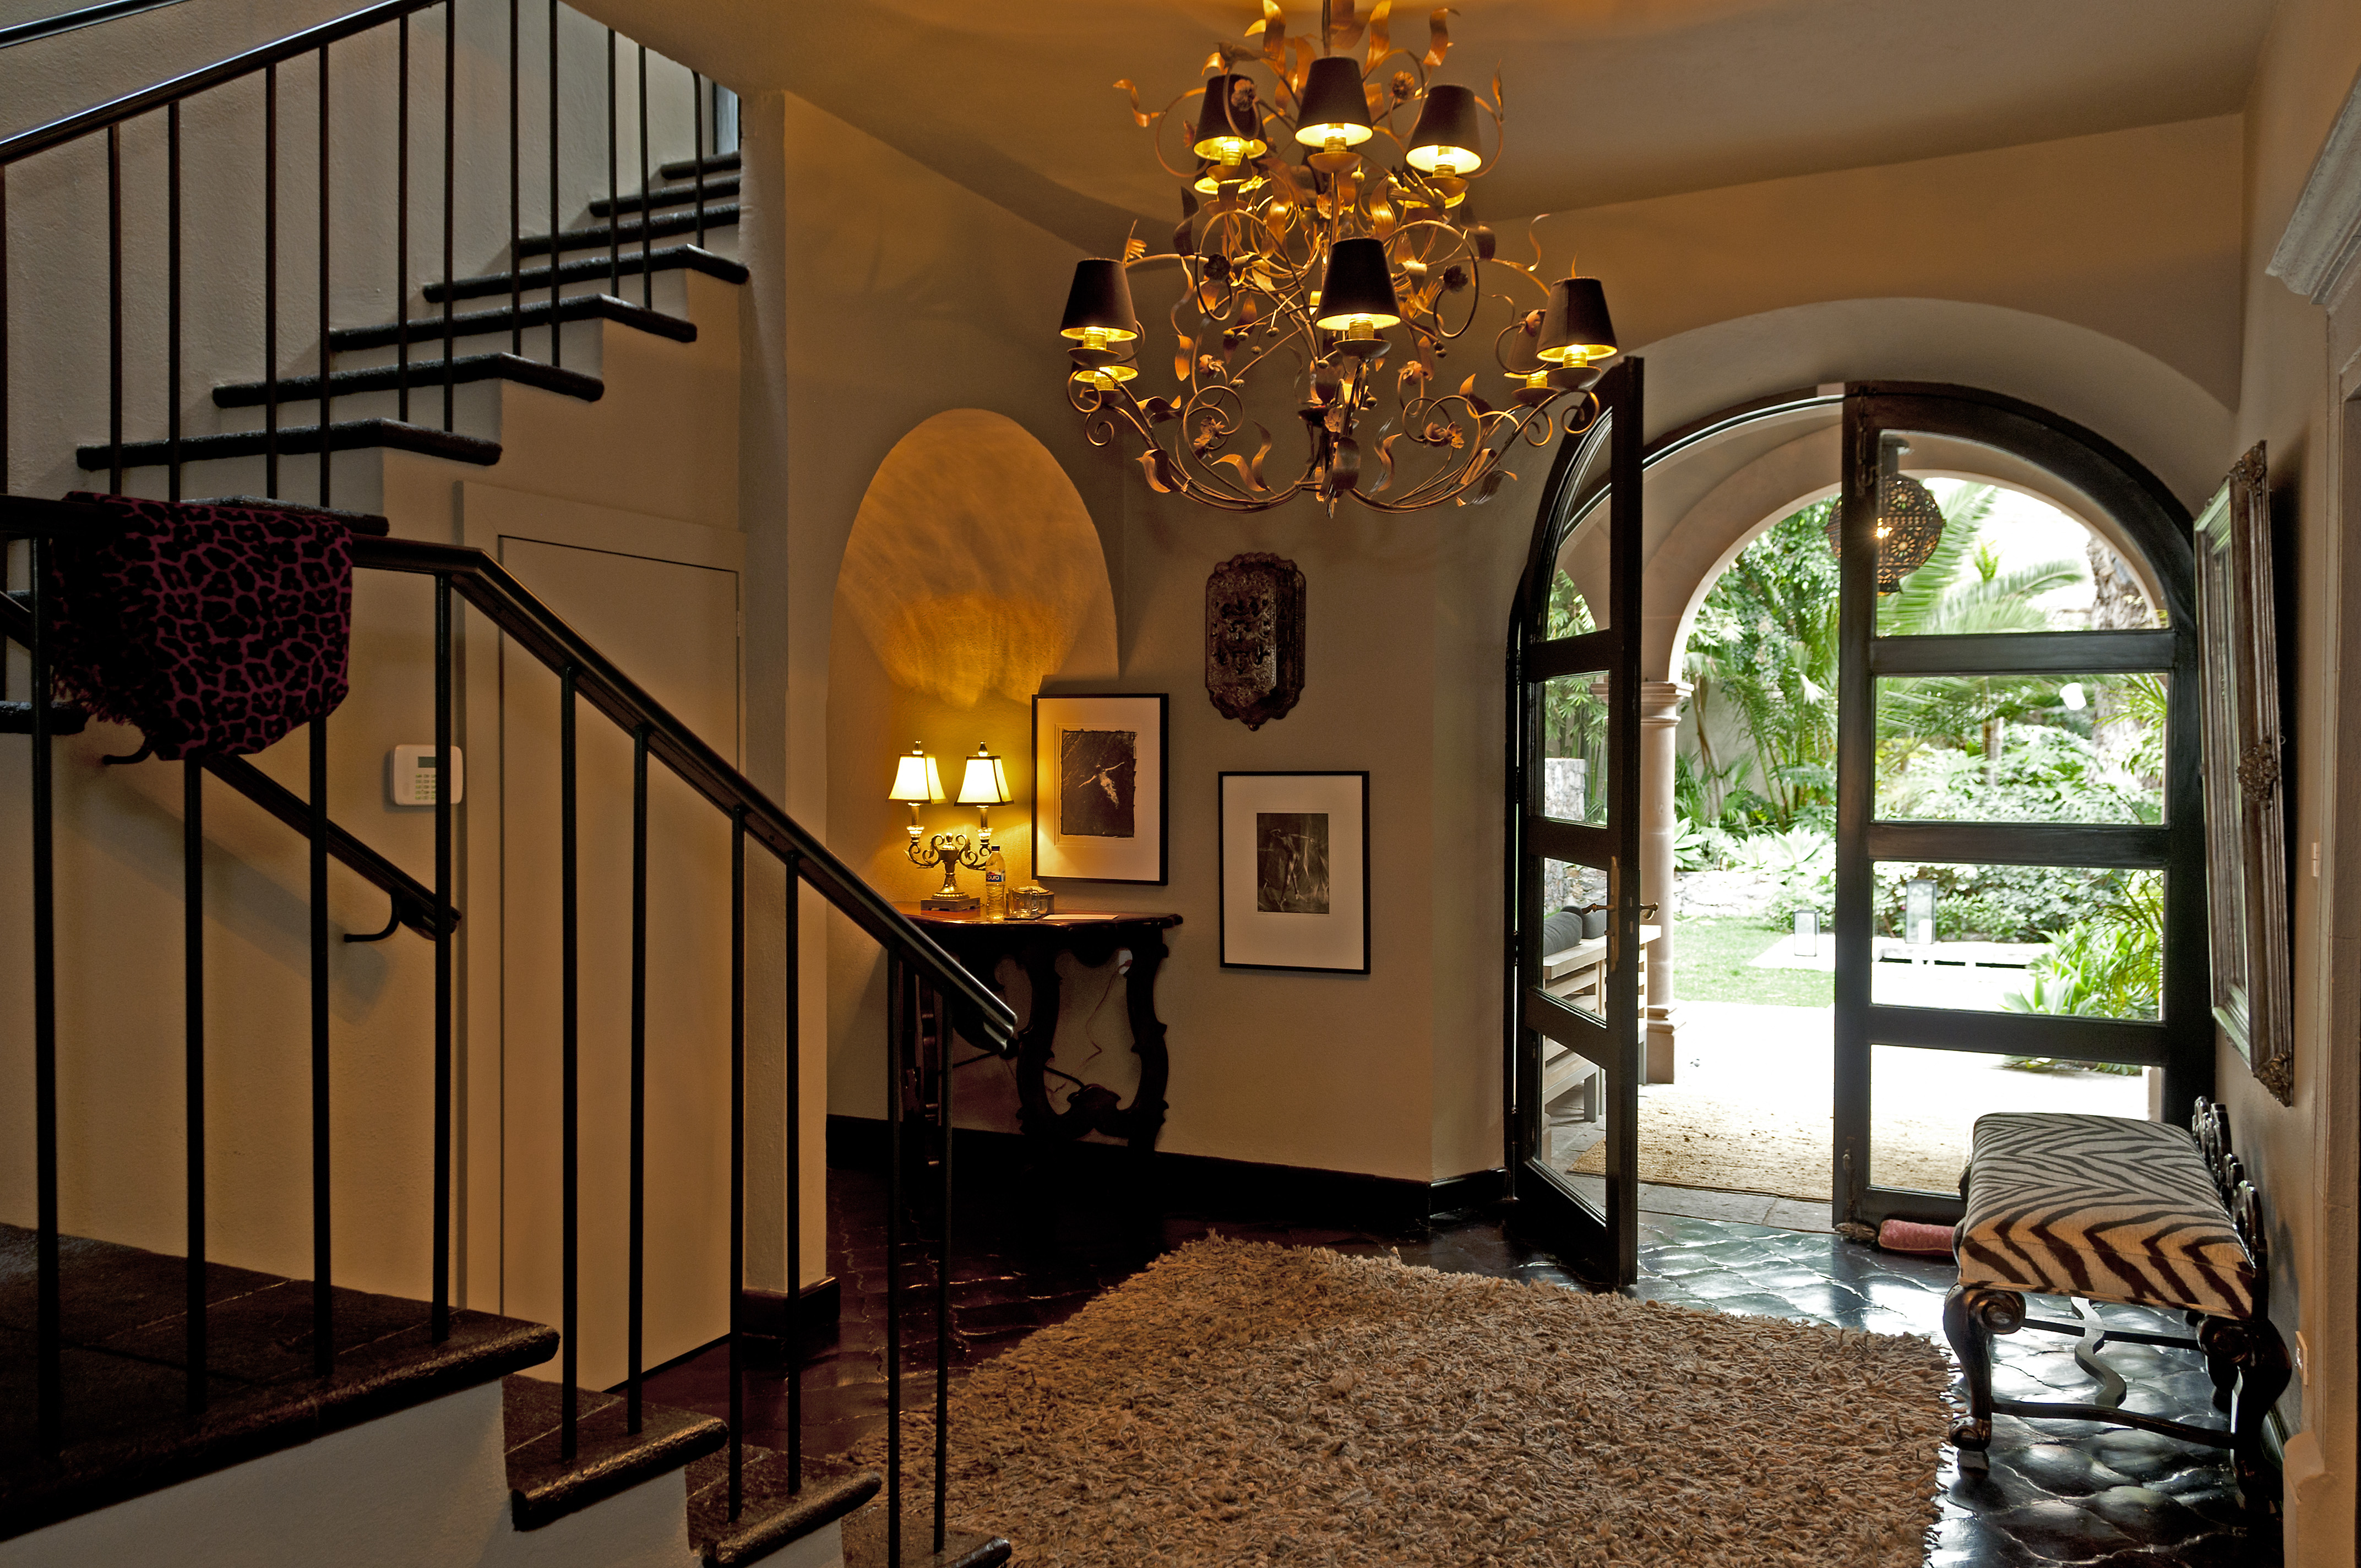 Casa Alegria entry with stairway 1st flo